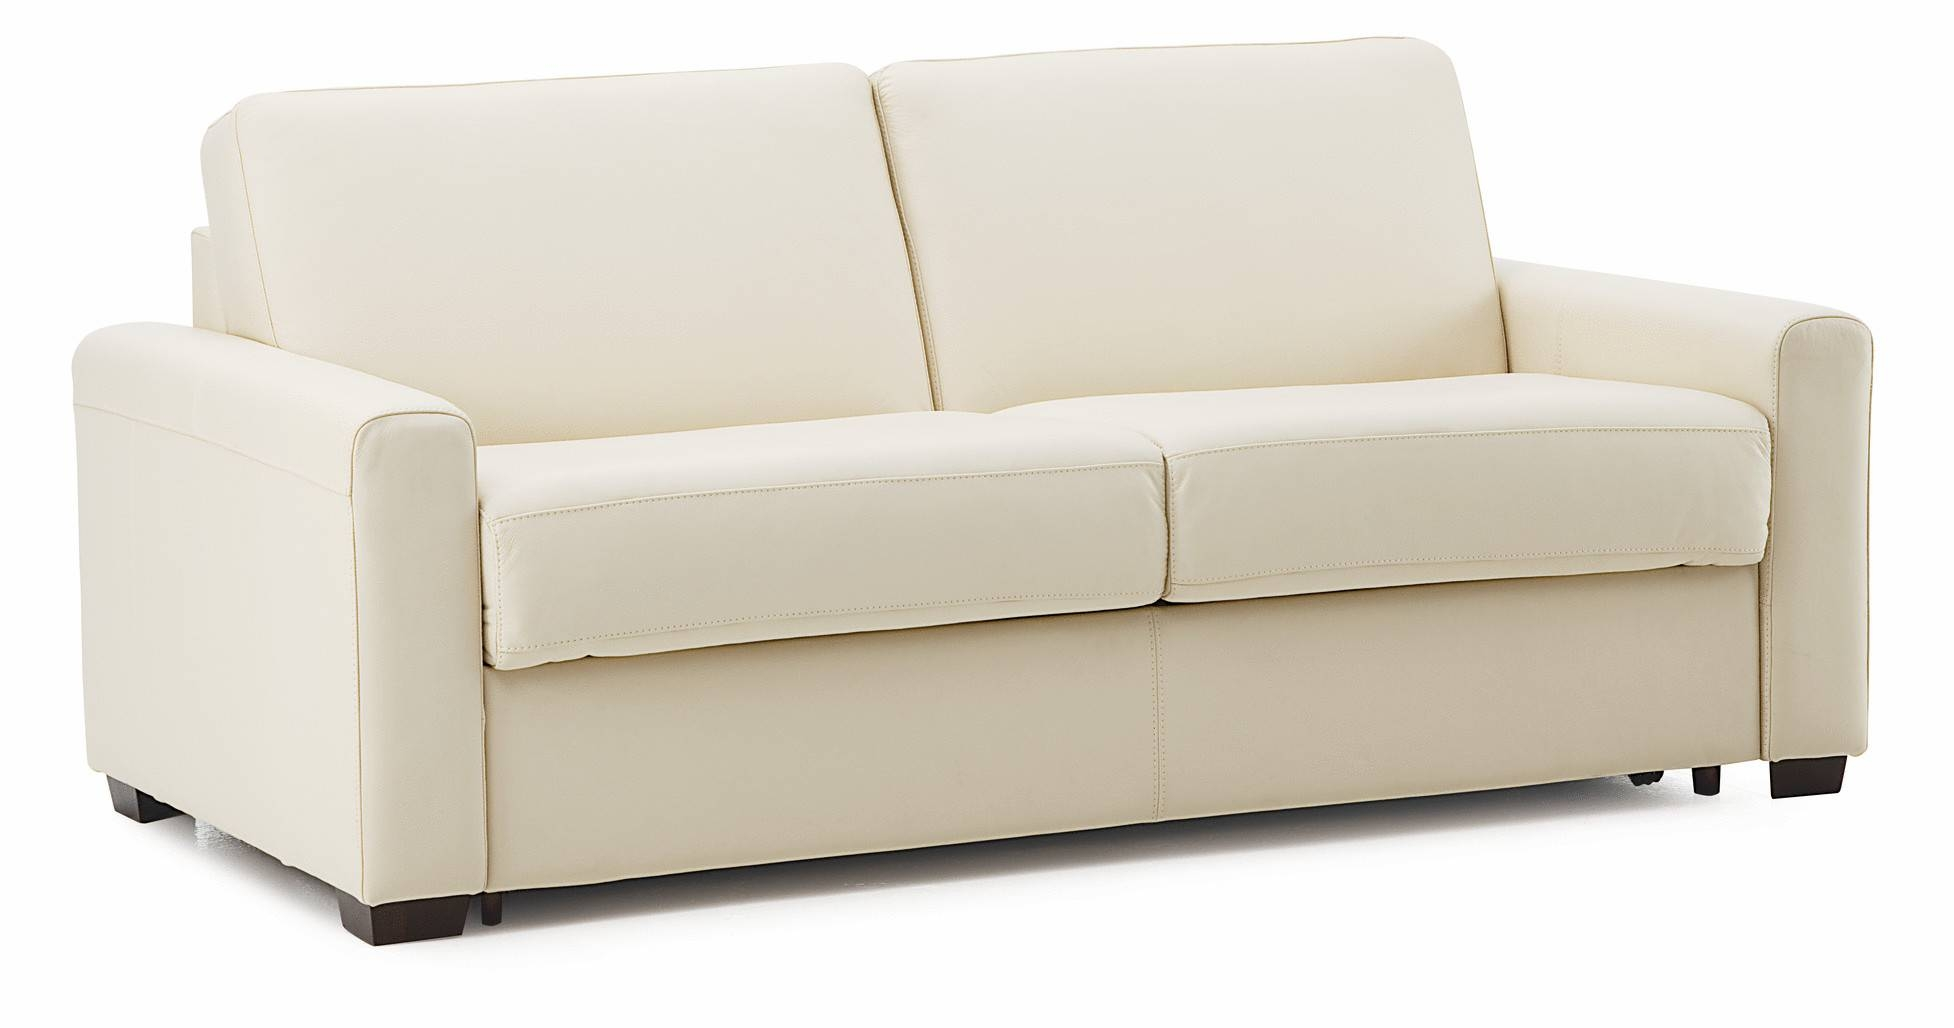 Brown Leather Twin Sleeper Sofa | Tehranmix Decoration inside Twin Sofa Chairs (Image 3 of 30)